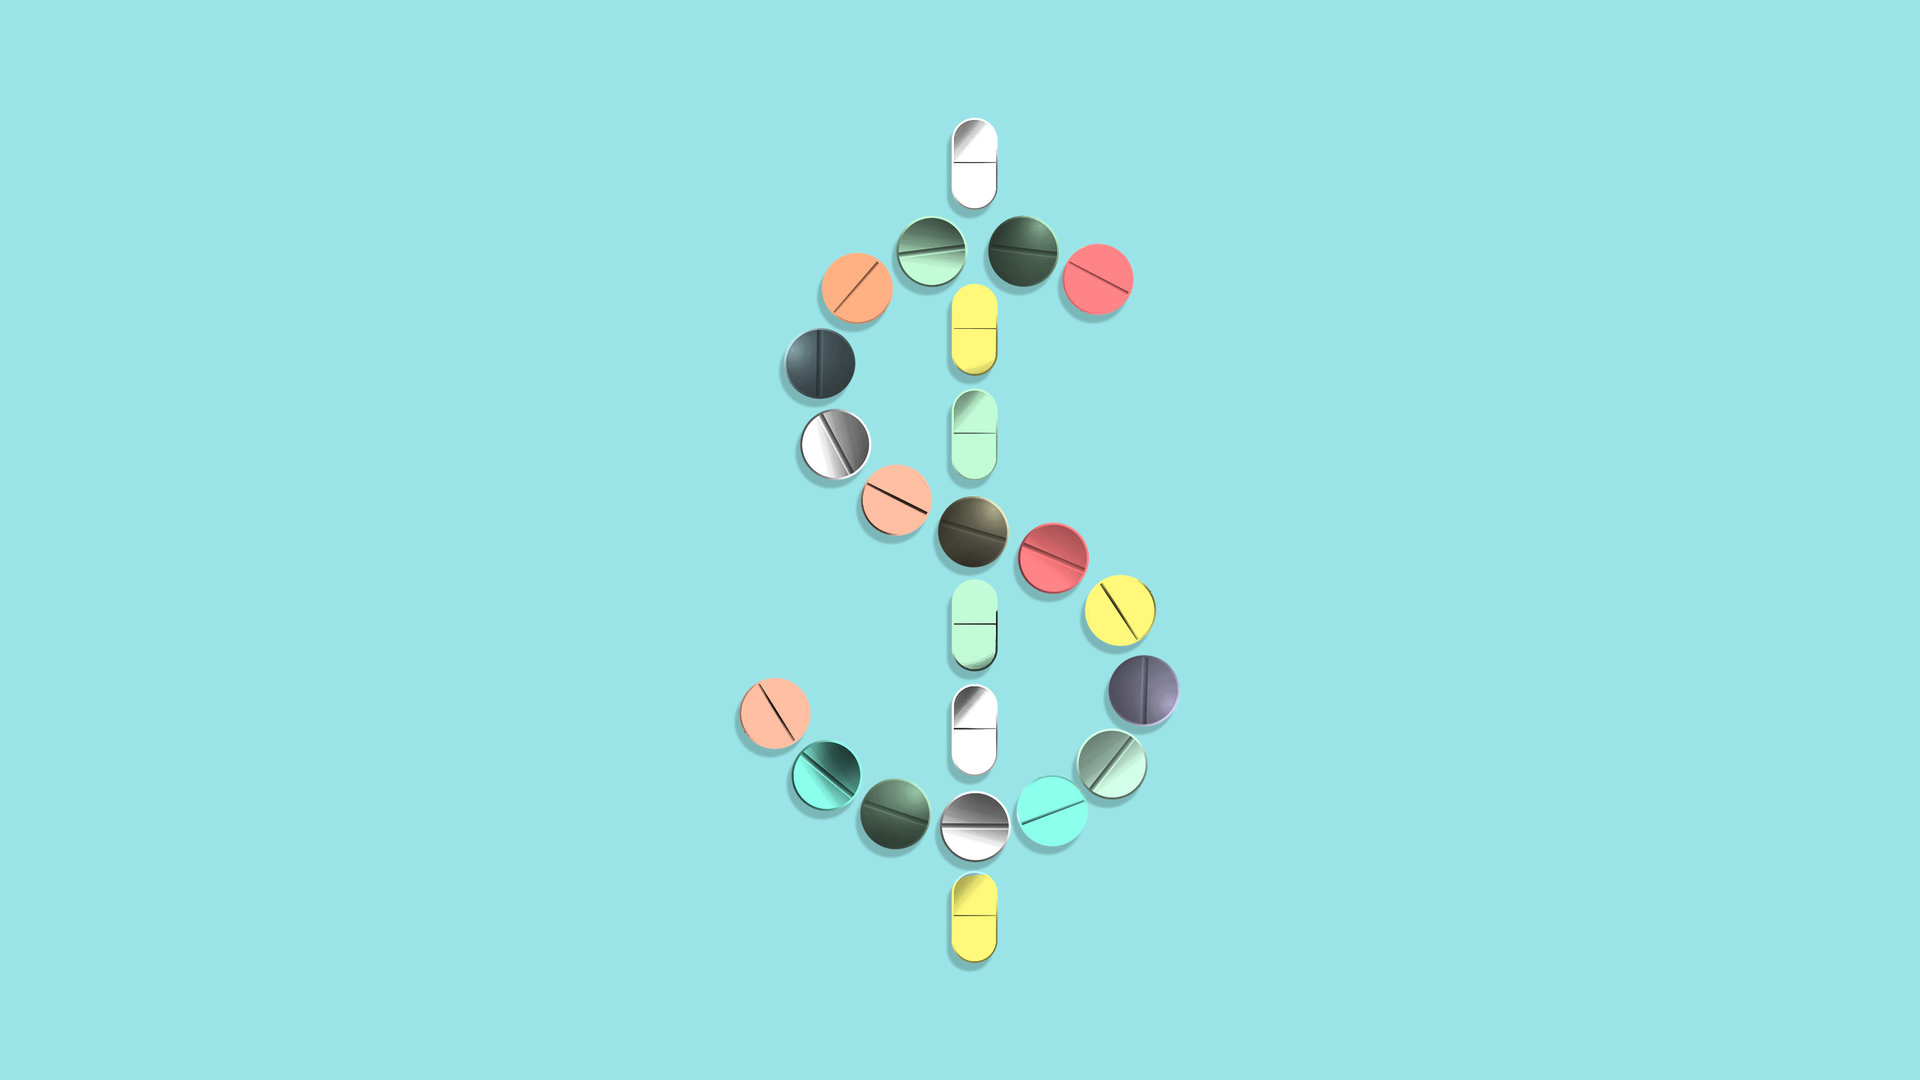 Pills in the shape of a dollar sign